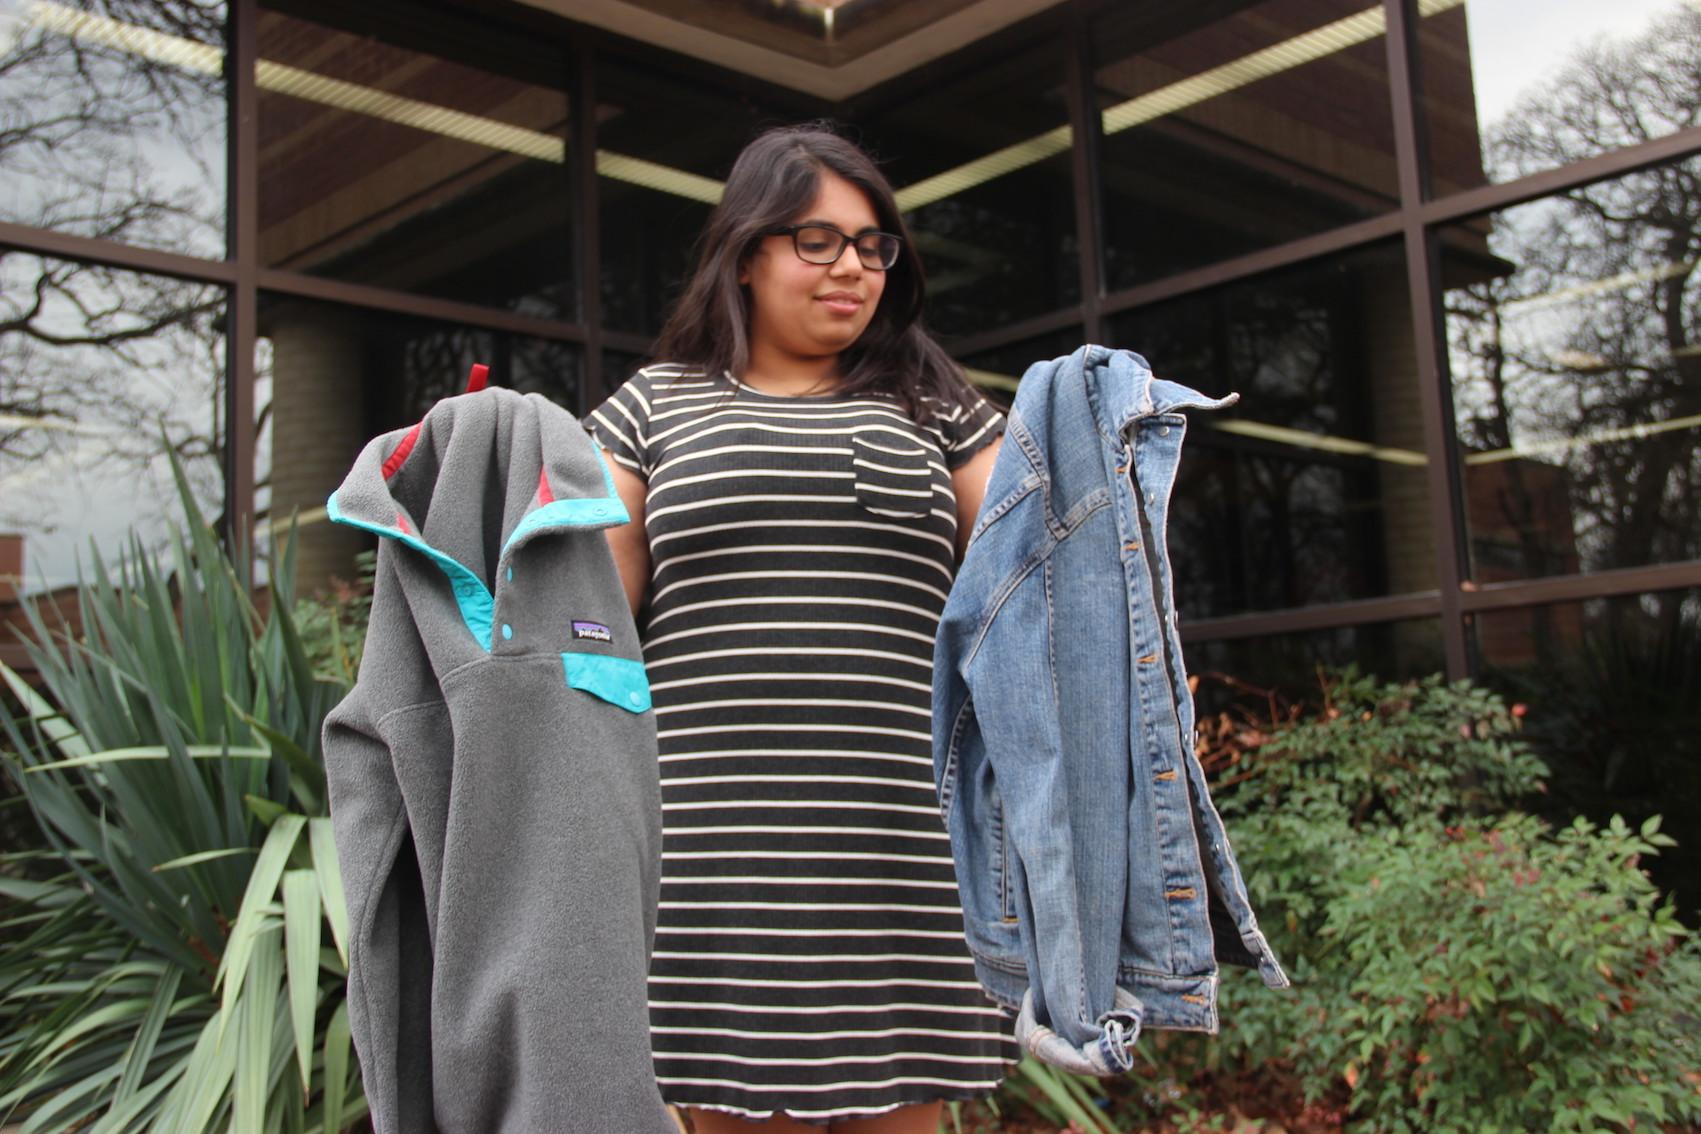 Coppell High School junior Farah Merchant decides between dressing up her outfit with a cute jean jacket or wearing a comfy sweatshirt to school. Dressing up can boost confidence and Merchant put that theory to the test last week.